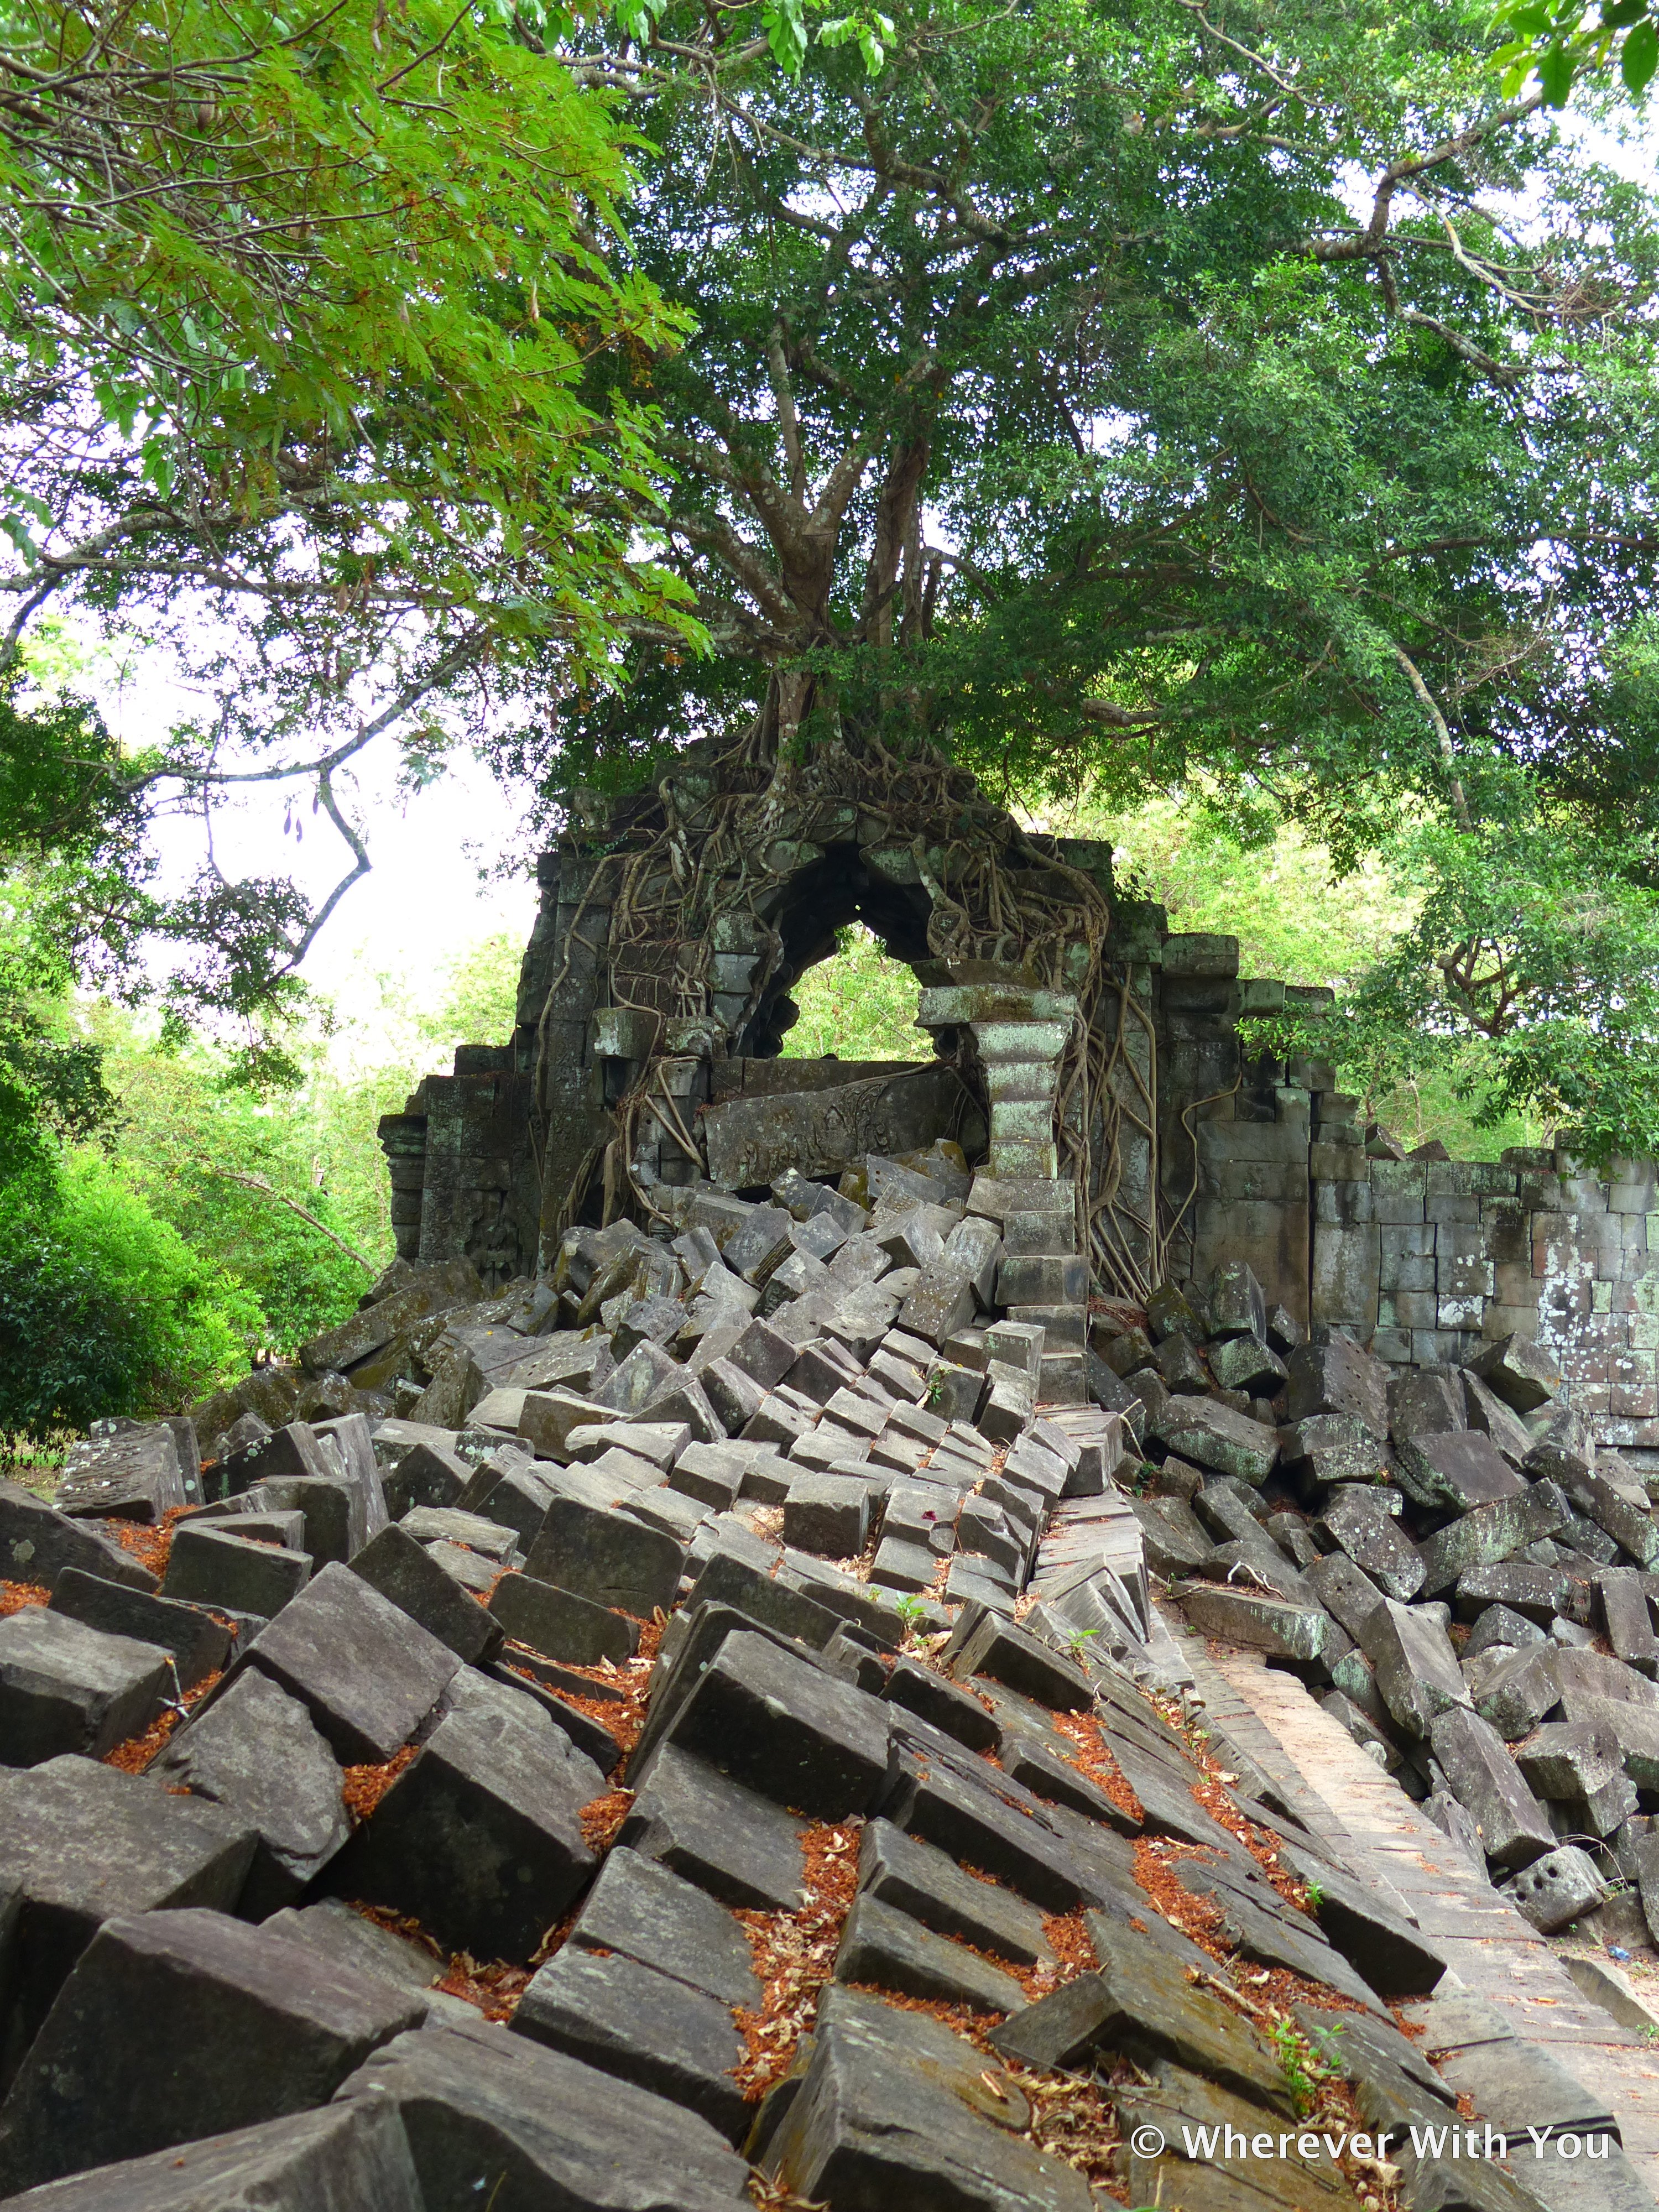 Trees have overgrown the ruined walls of Beng Mealea.